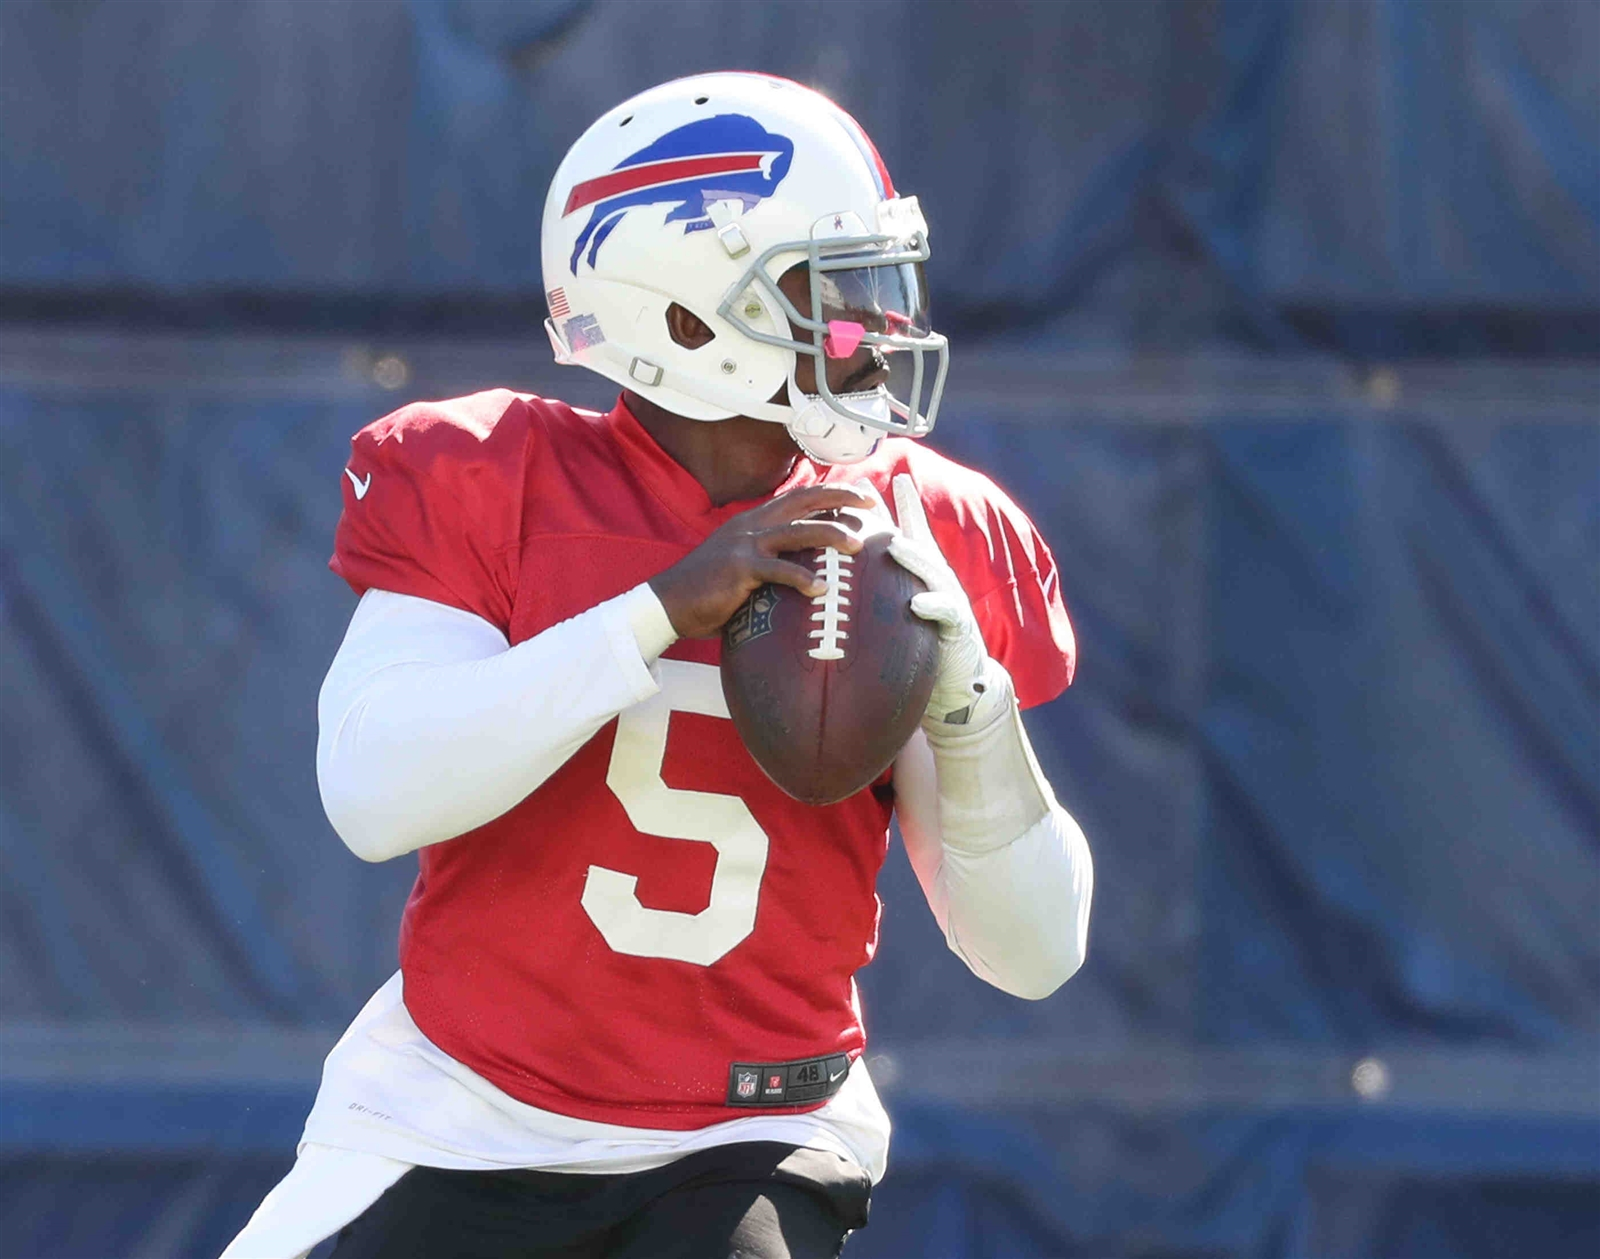 Tyrod Taylor gets set to throw a pass.